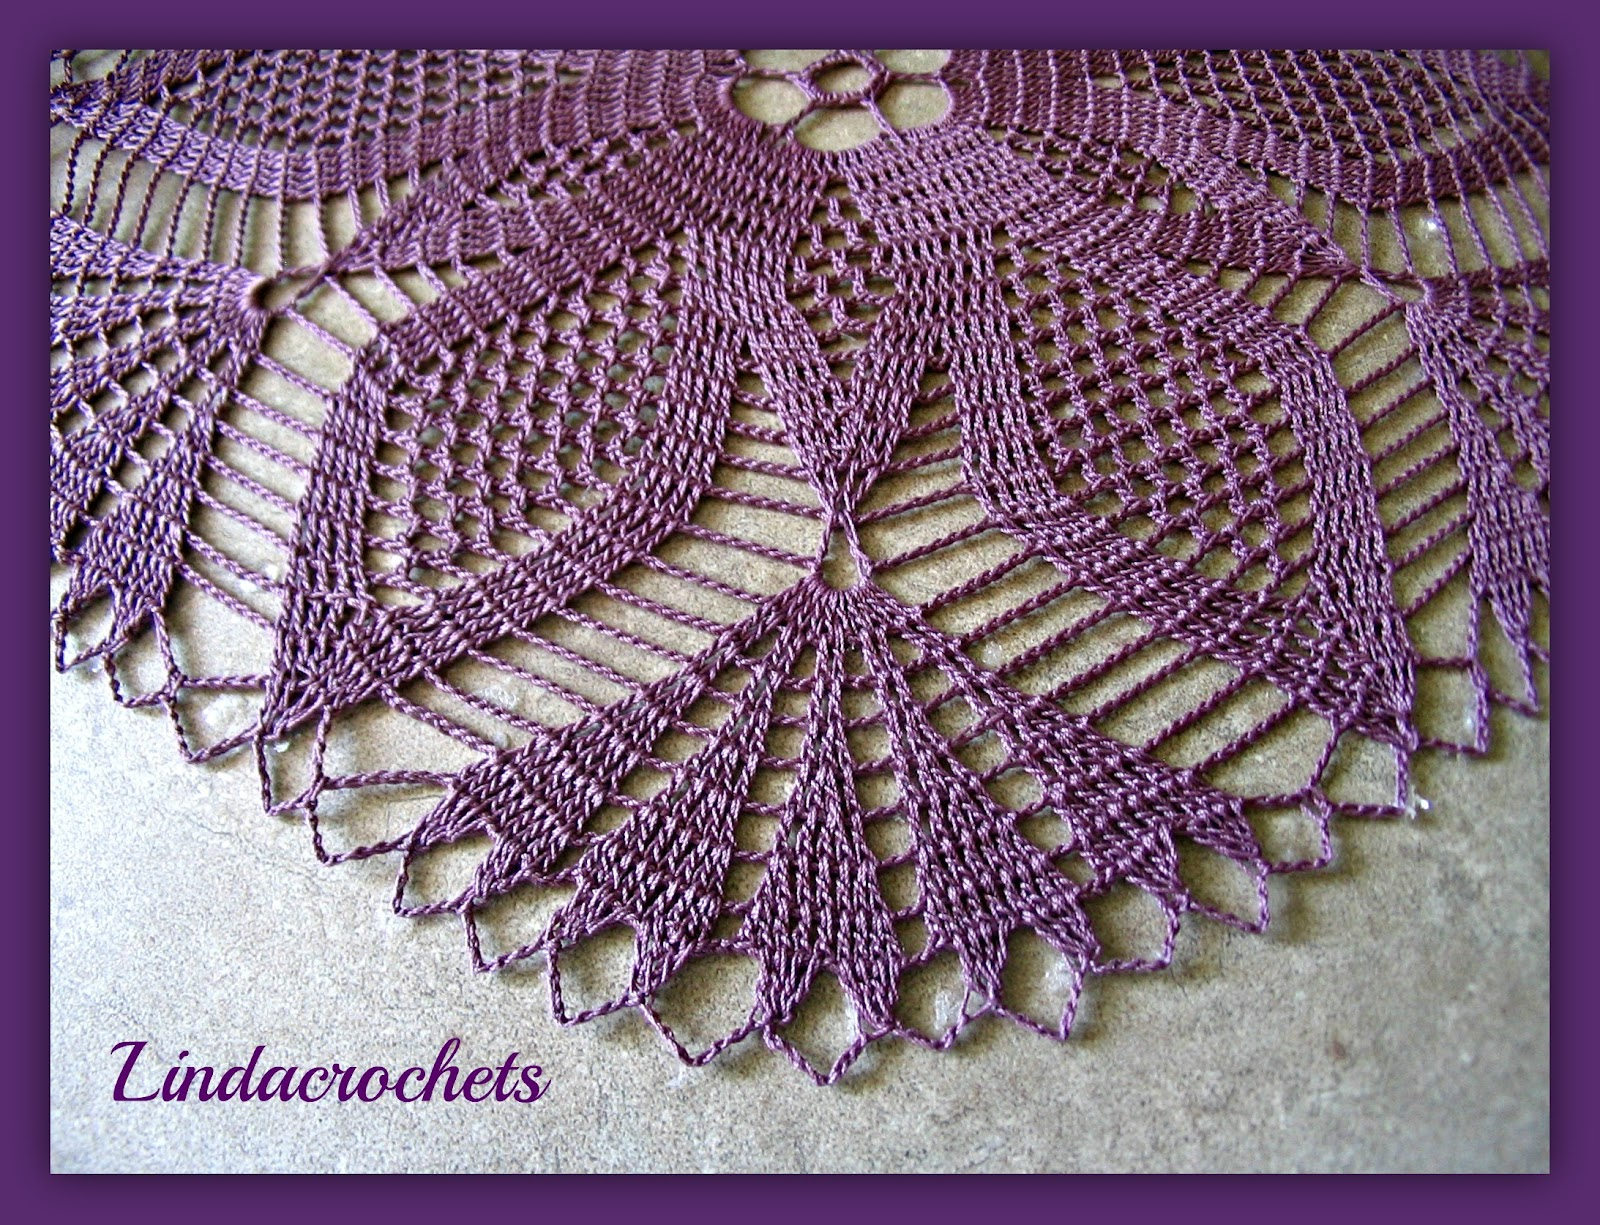 Decorative Crochet : ... Albums Crochet Picasa Web Albums Decorative Crochet bunda-daffa.com